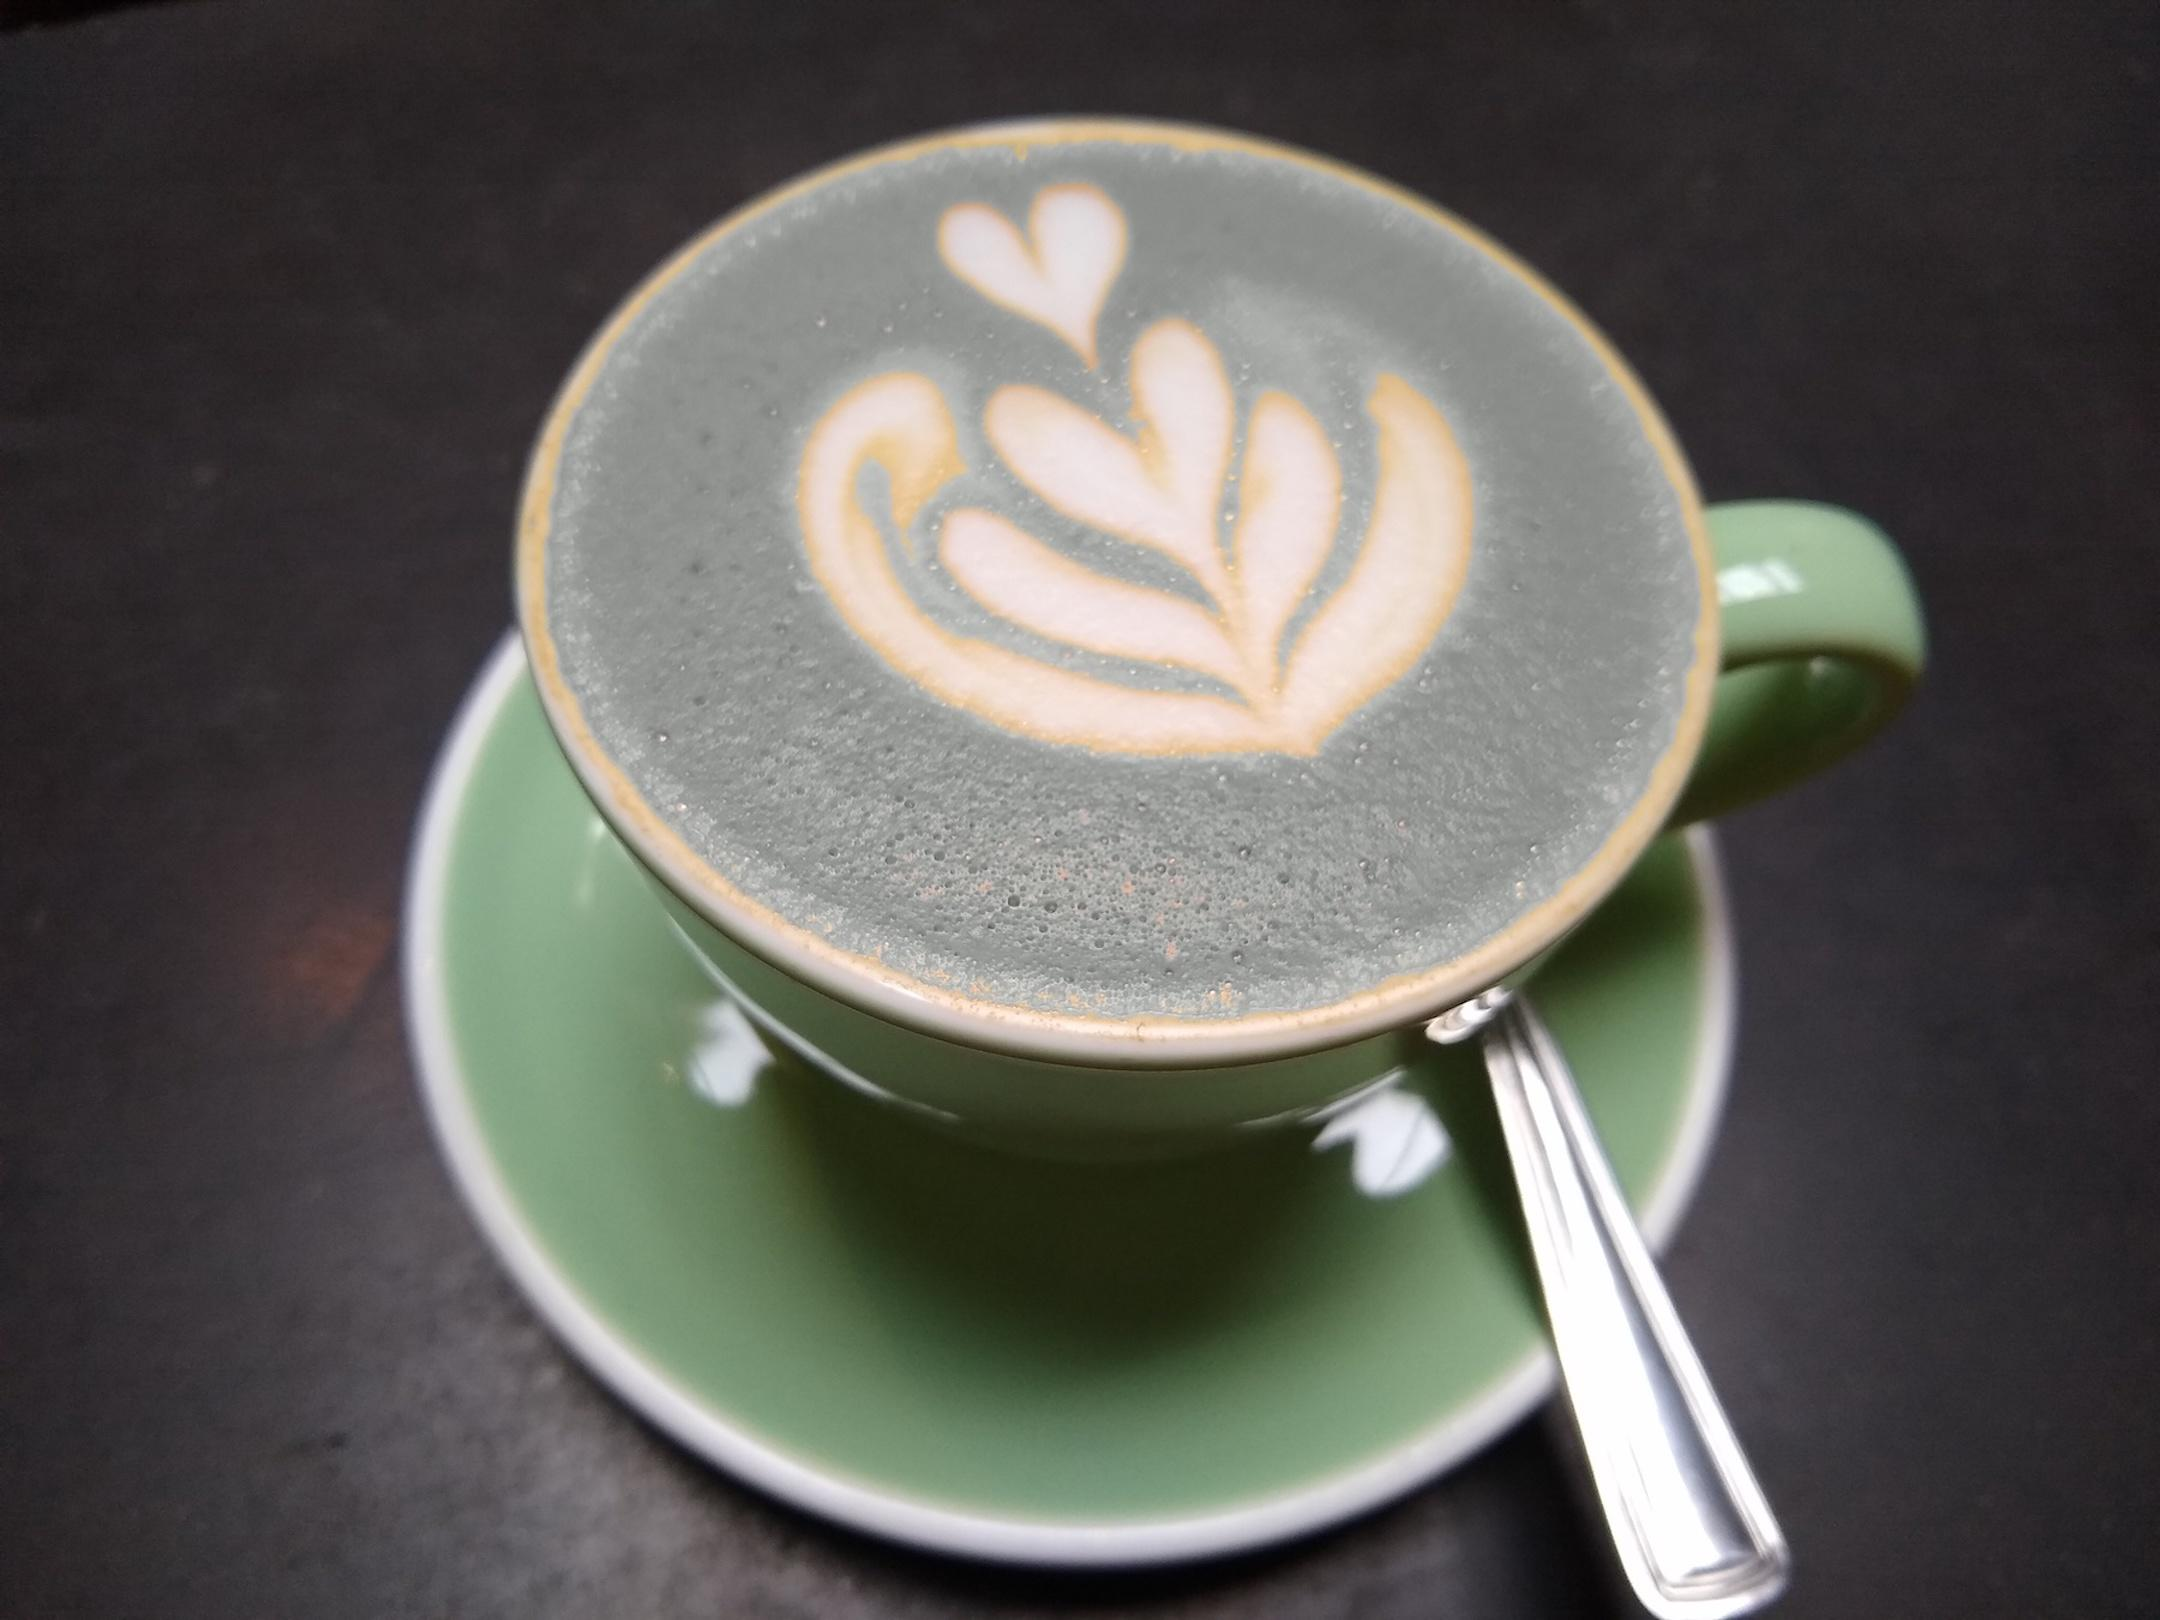 small-good-photo-spot-color-cappuccino